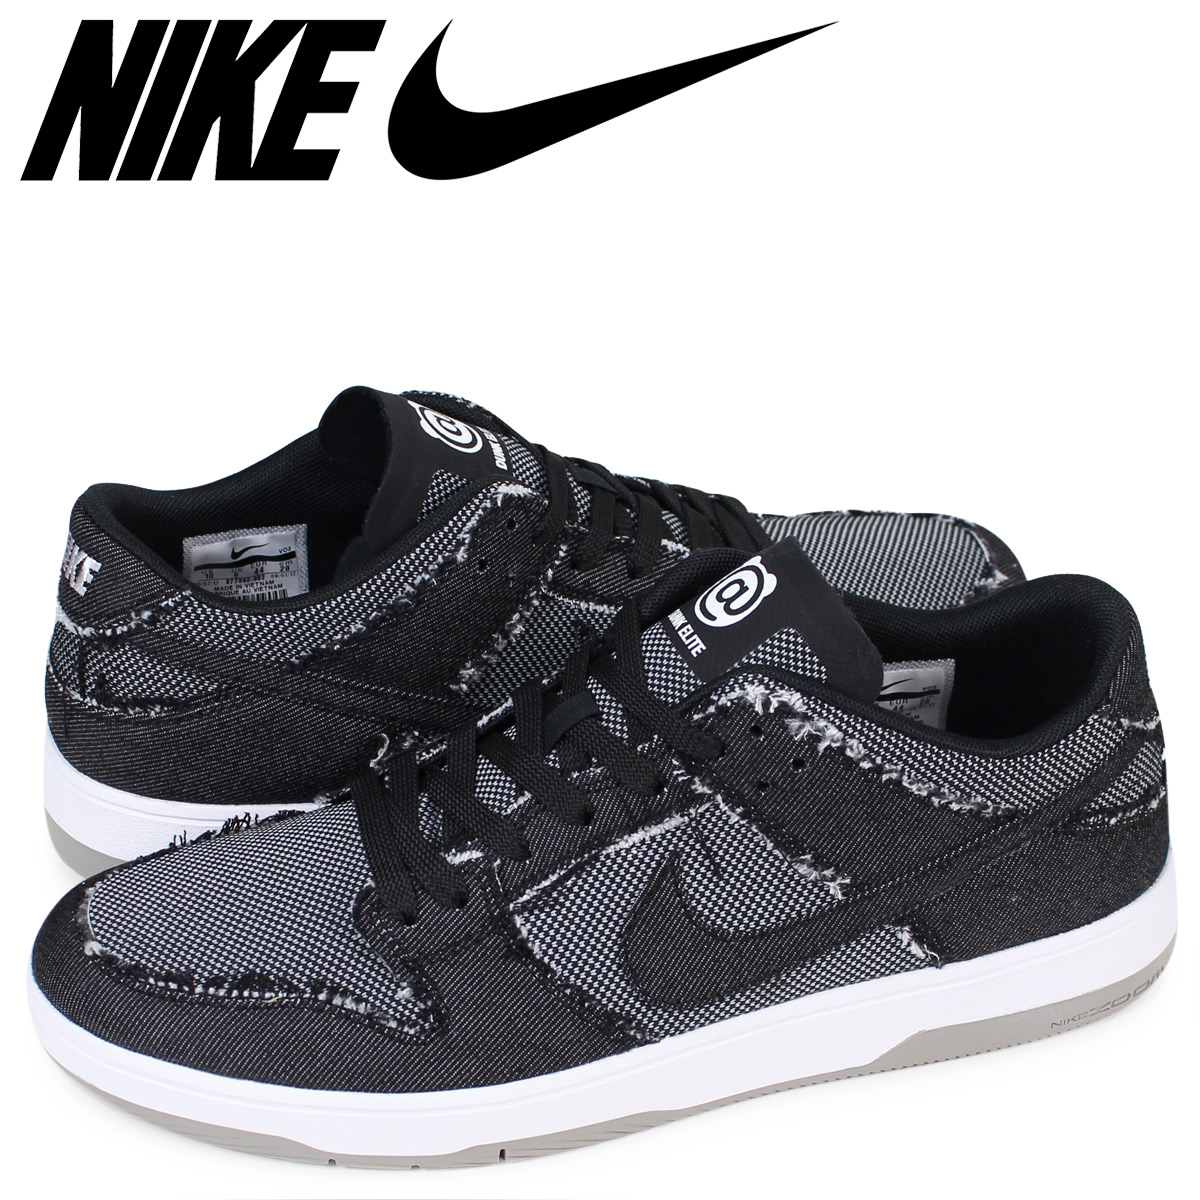 db15c3c02ad2 Whats up Sports  NIKE SB ZOOM DUNK LOW ELITE QS MEDICOM TOY BE RBRICK Nike  dunk low sneakers 877